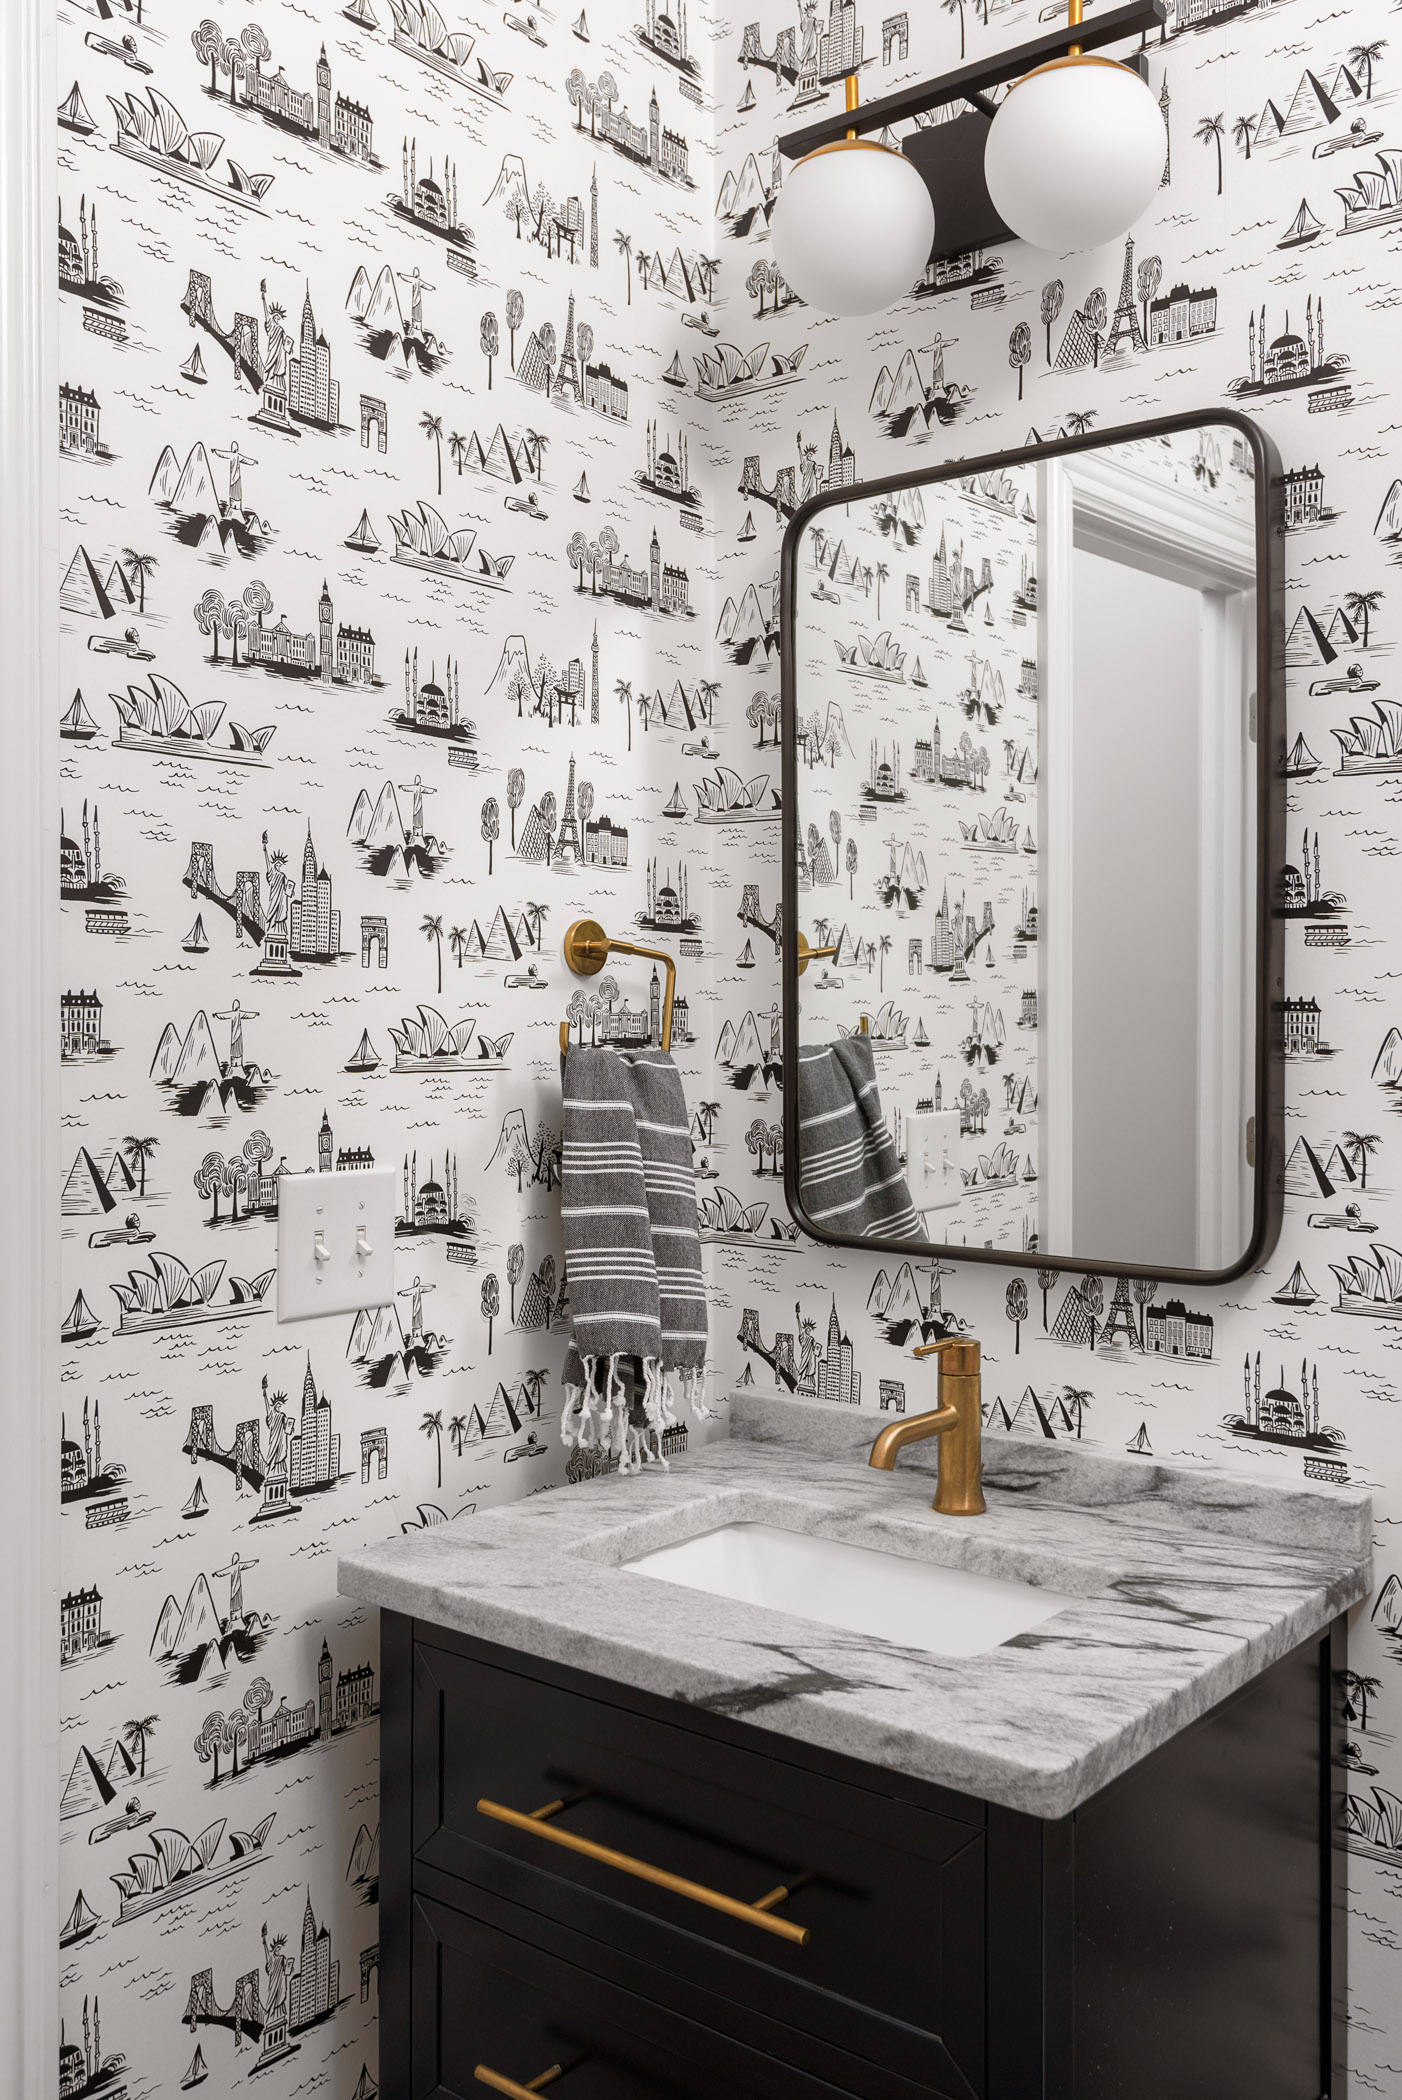 Lots of fun and whimsy packed into this tiny powder room!